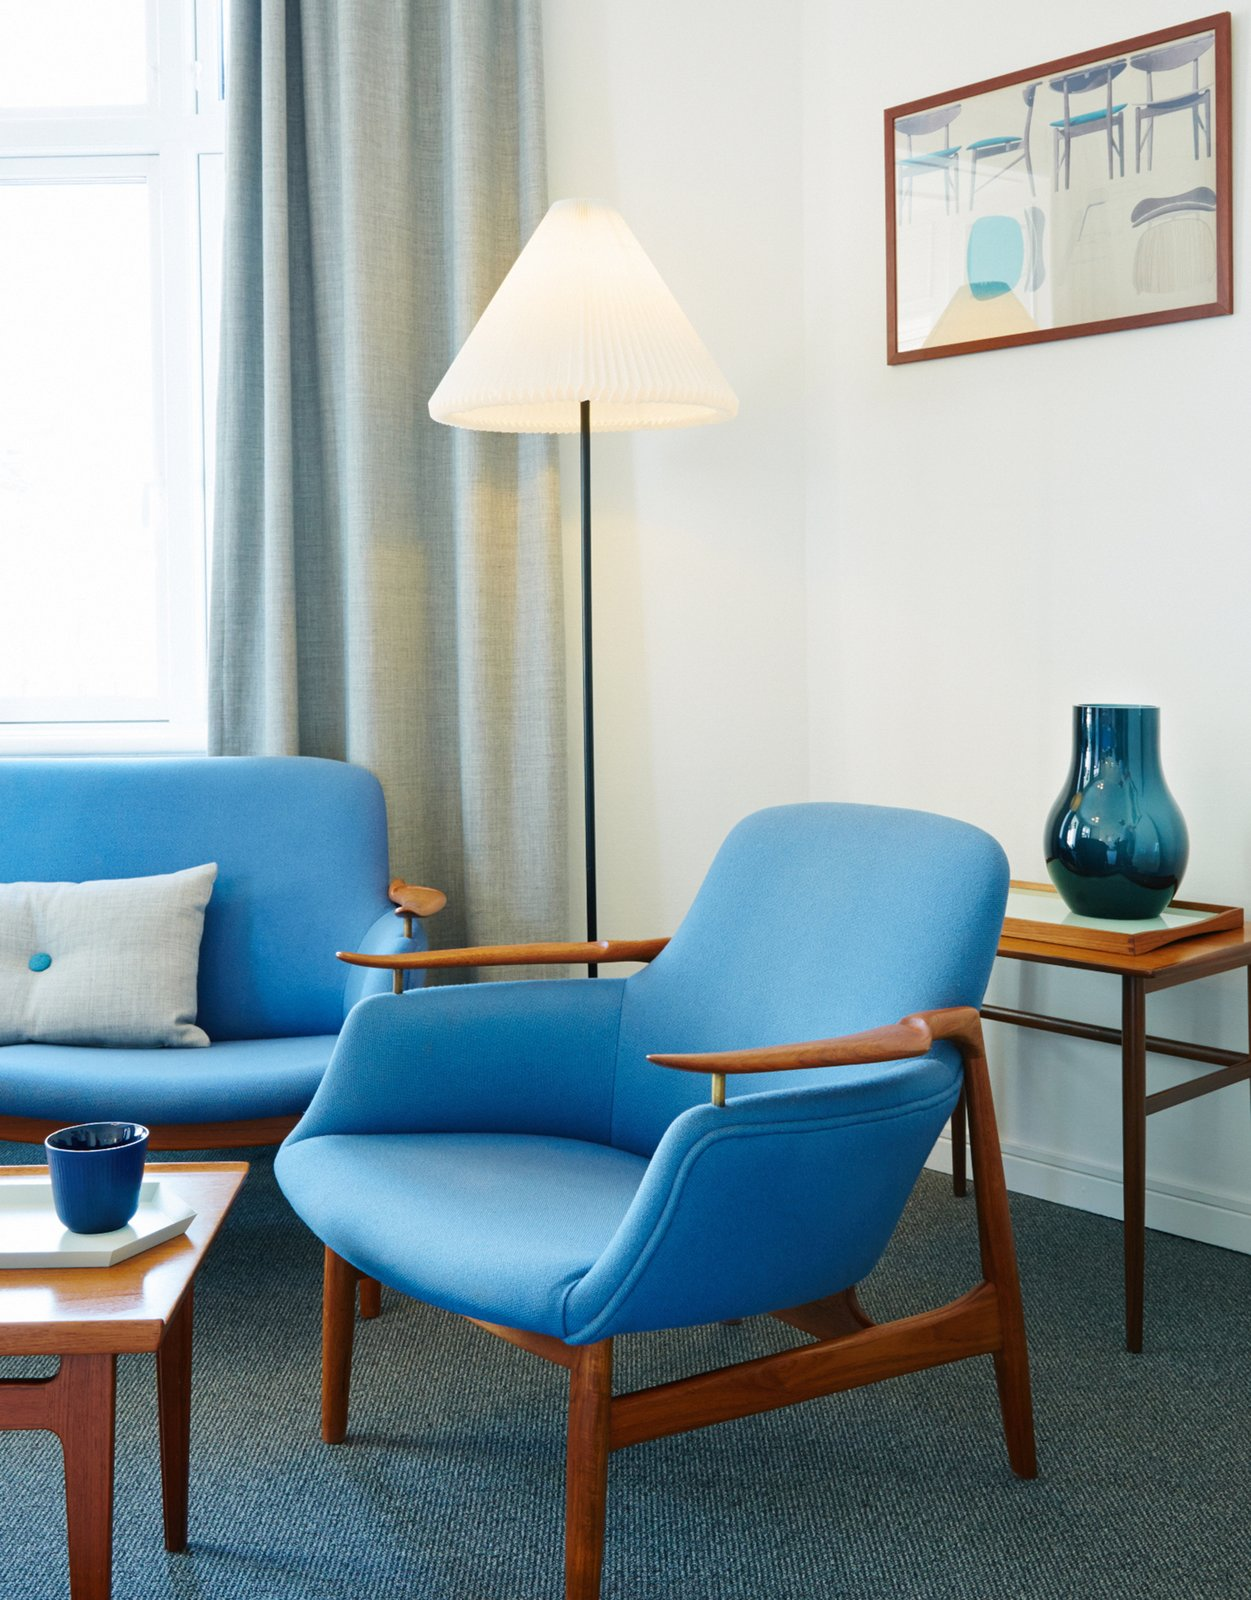 Finn Juhl Deluxe Room  Photo 7 of 9 in Get Your Fix of Midcentury Scandinavian Design at This Copenhagen Hotel